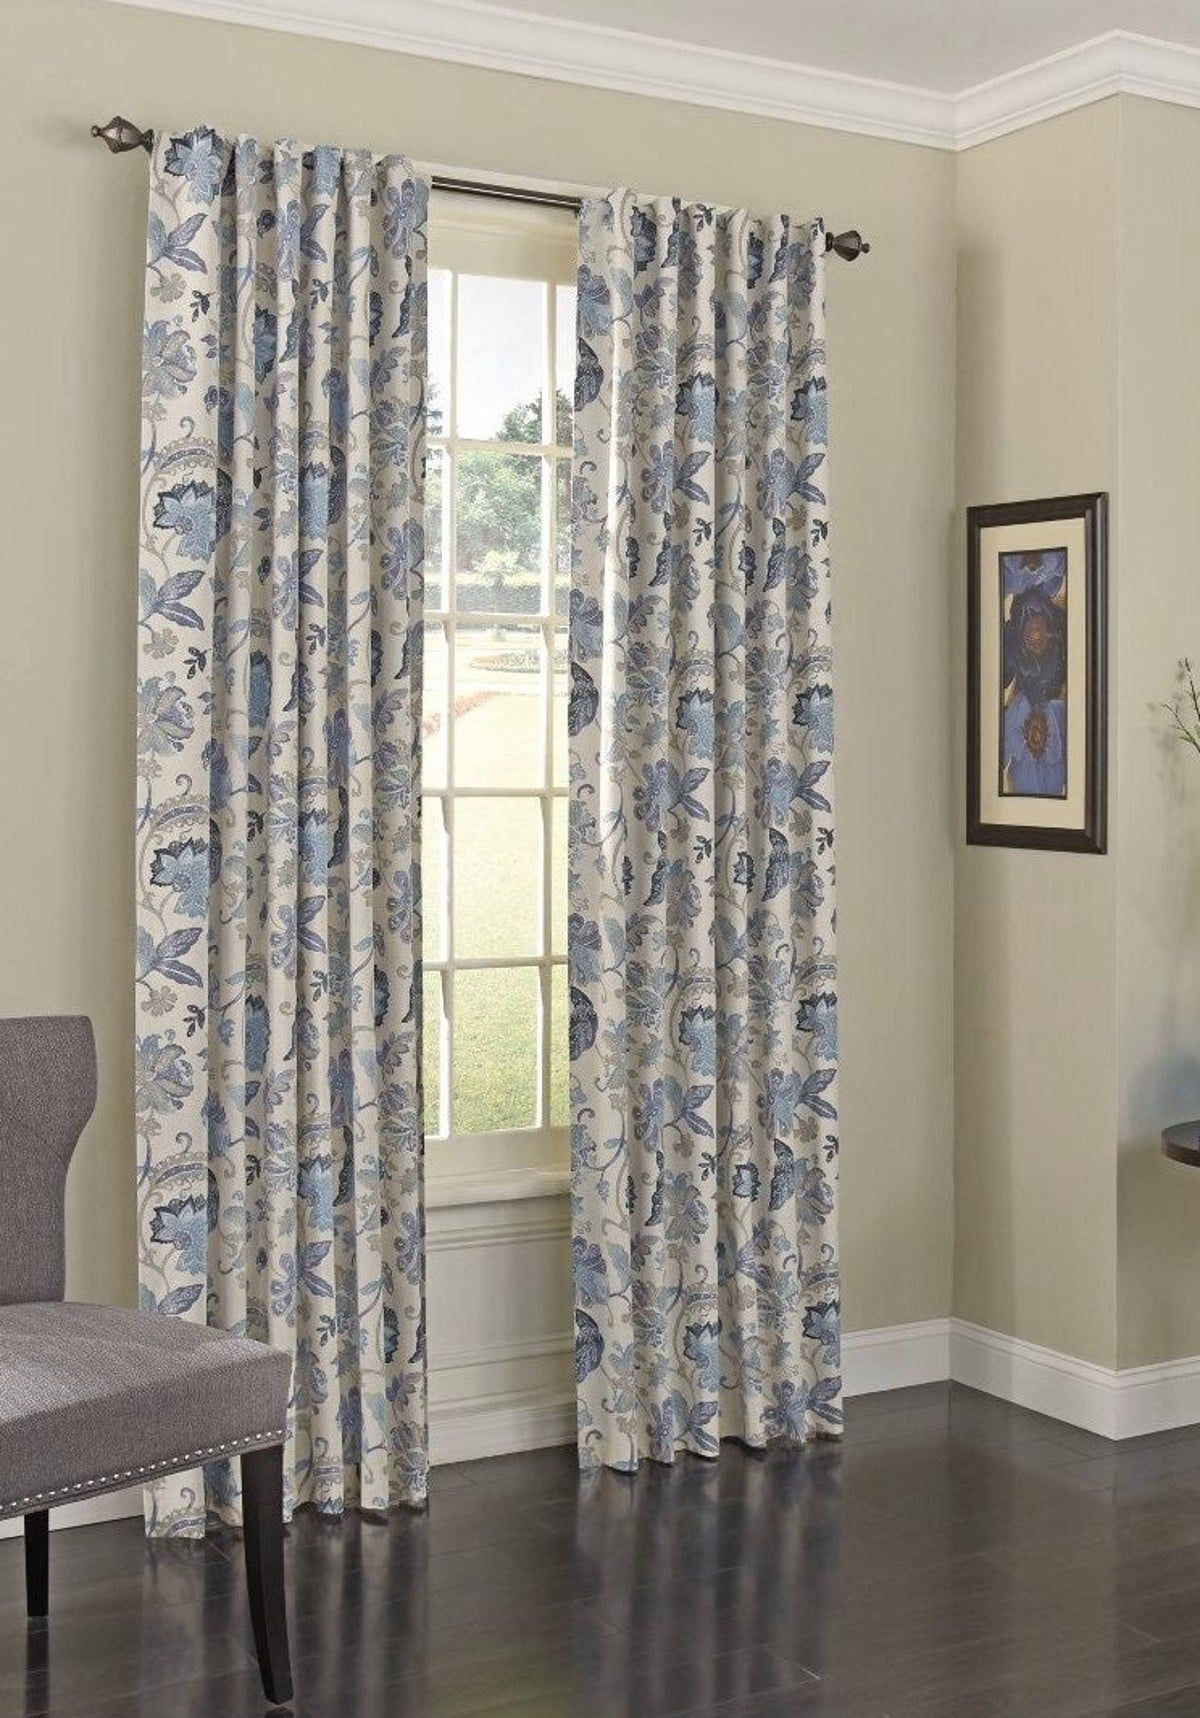 Blackout Curtain 1000 In 2020 Curtains Blackout Curtains Curtains Living Room